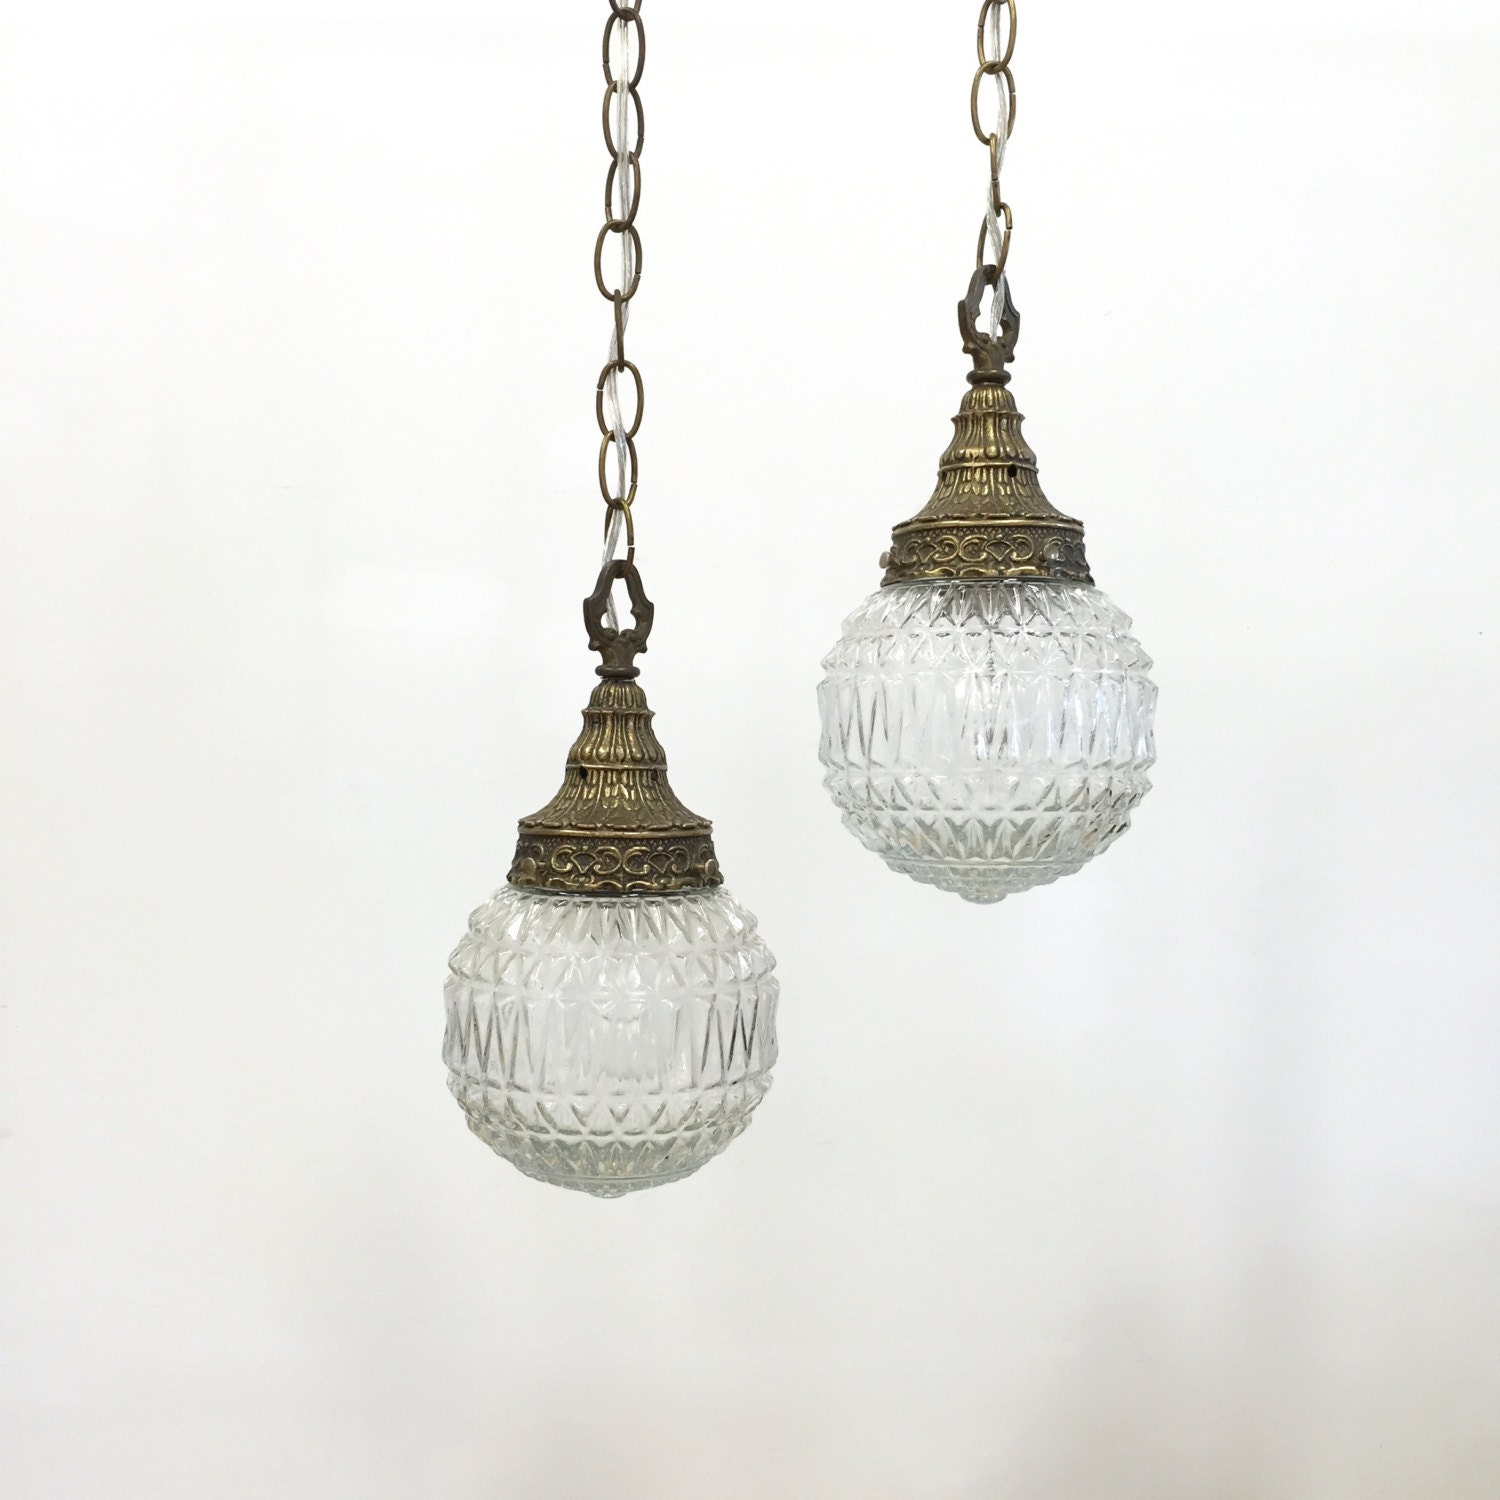 Vintage Swag Lamp Pendant Light Set Plug In Clear Pressed